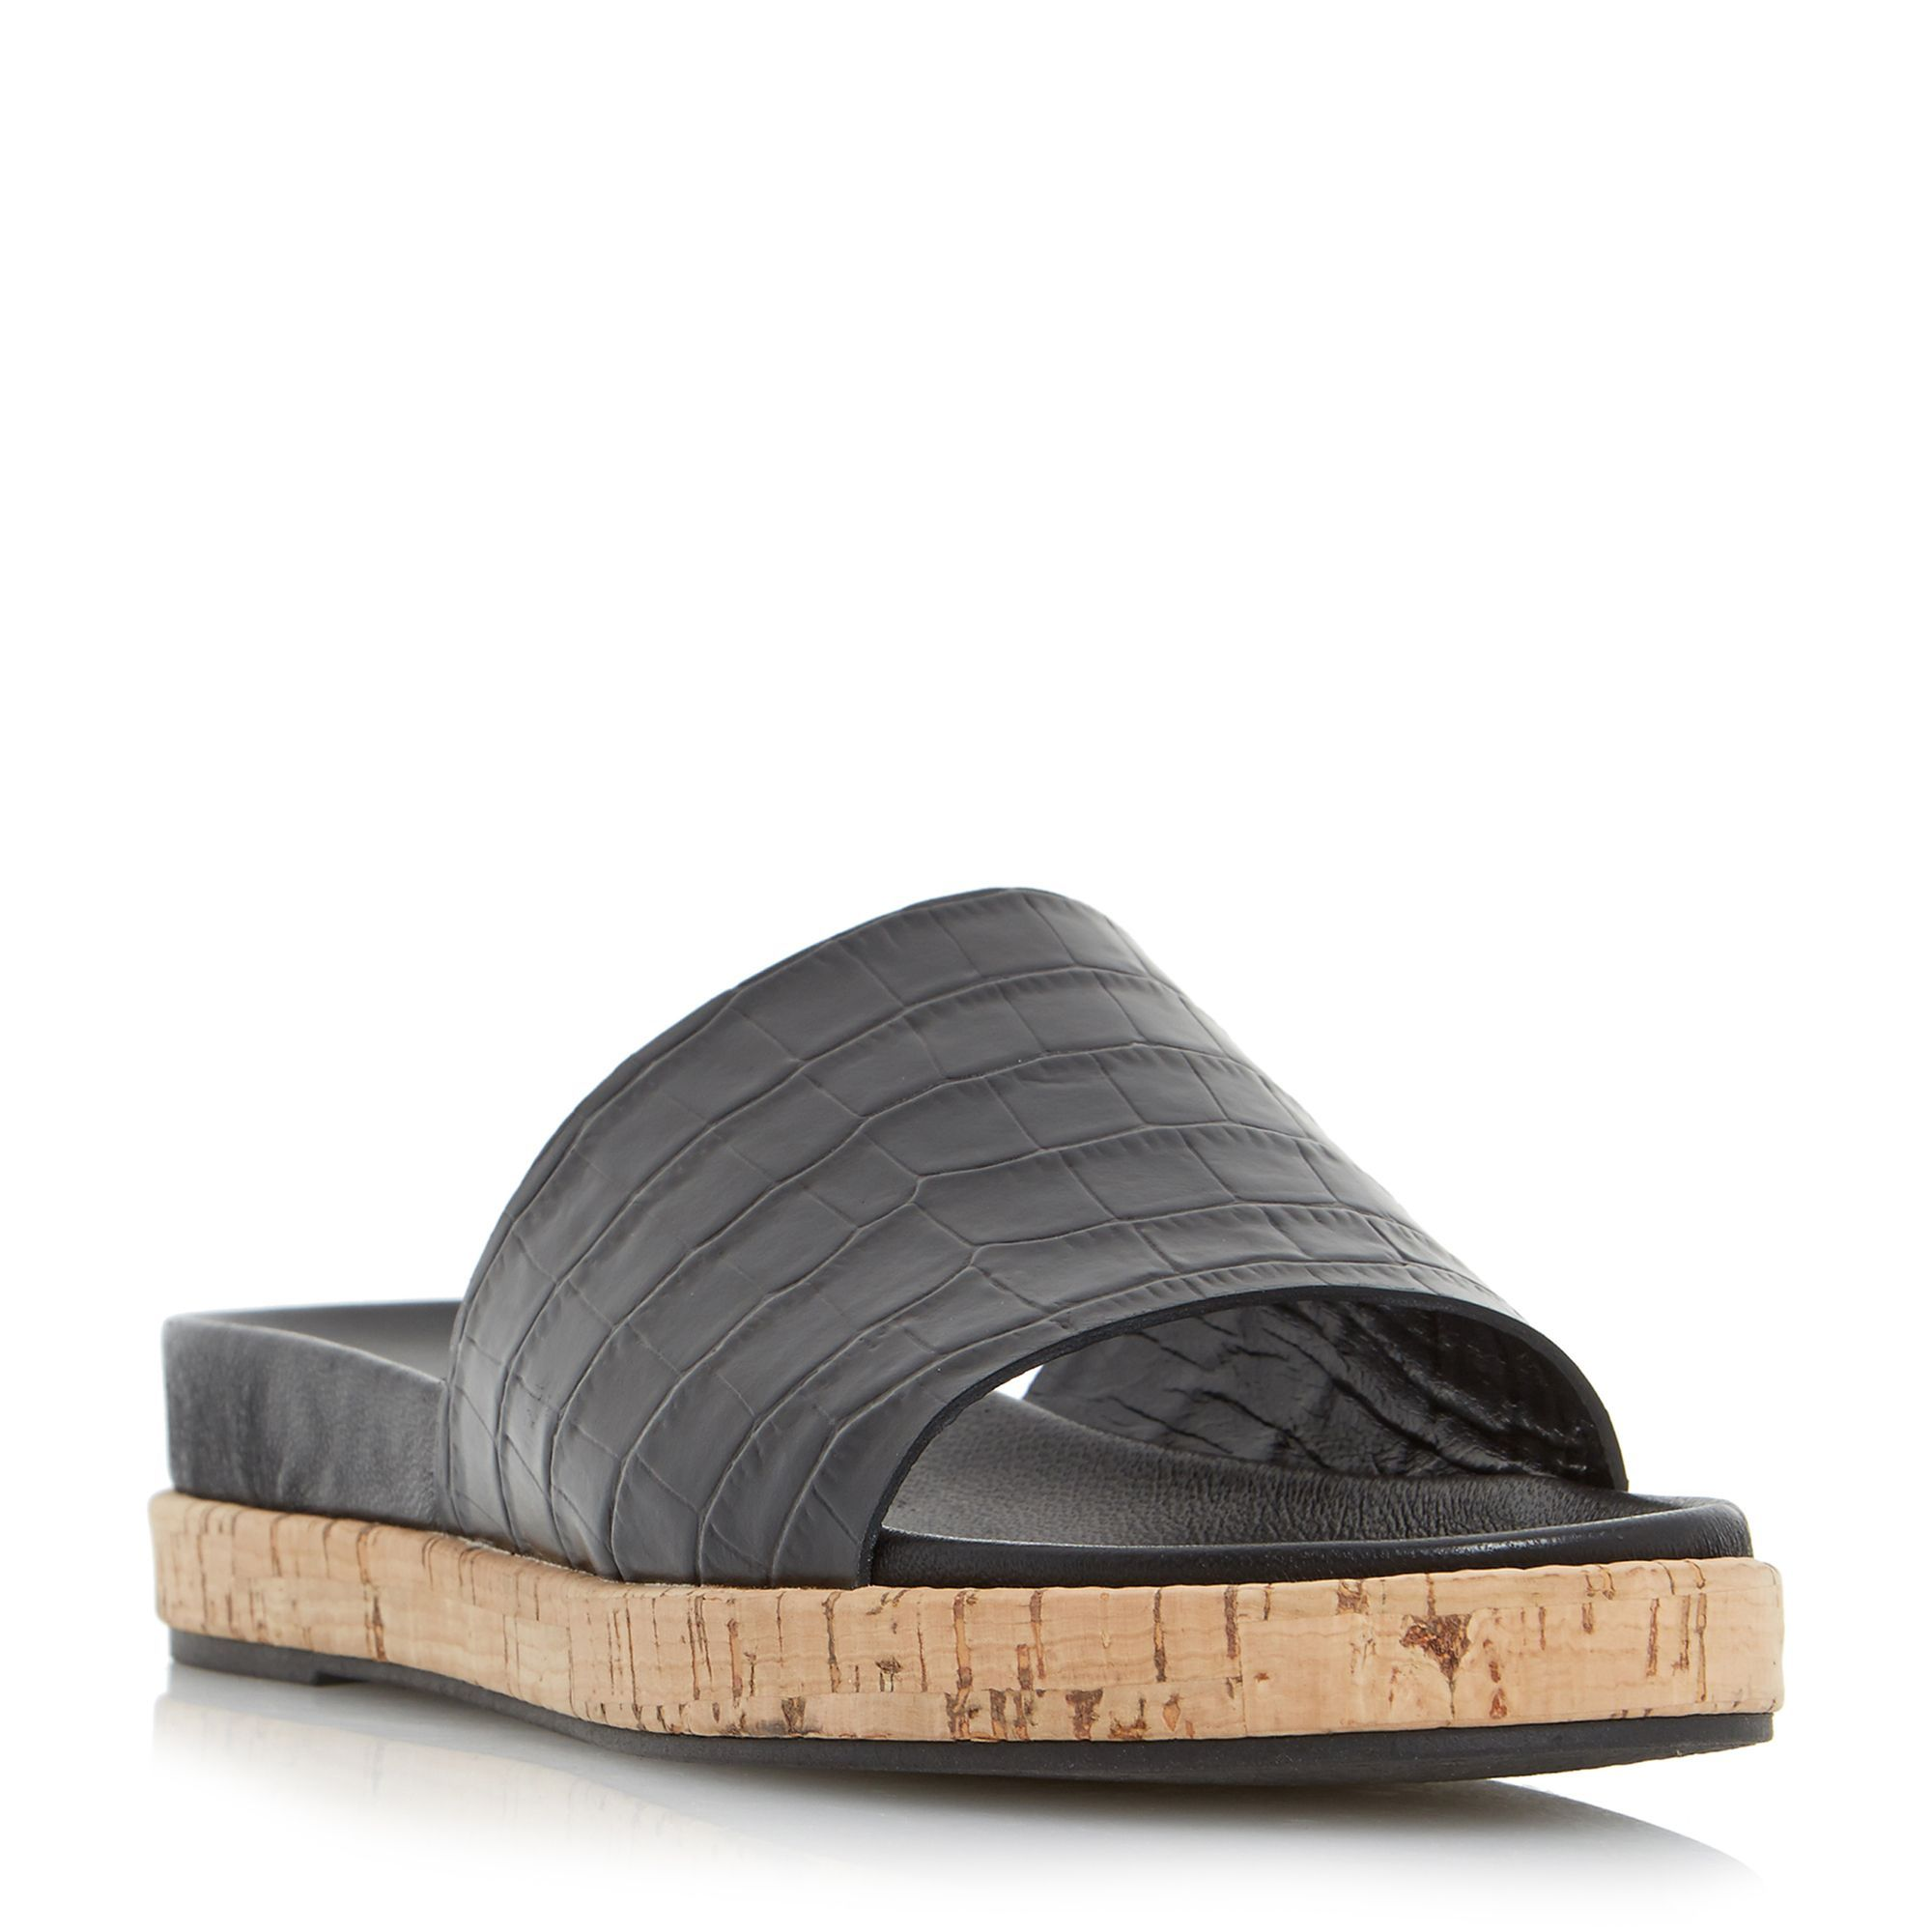 Dune Black Lackey cork effect outsole mule sandals, Black